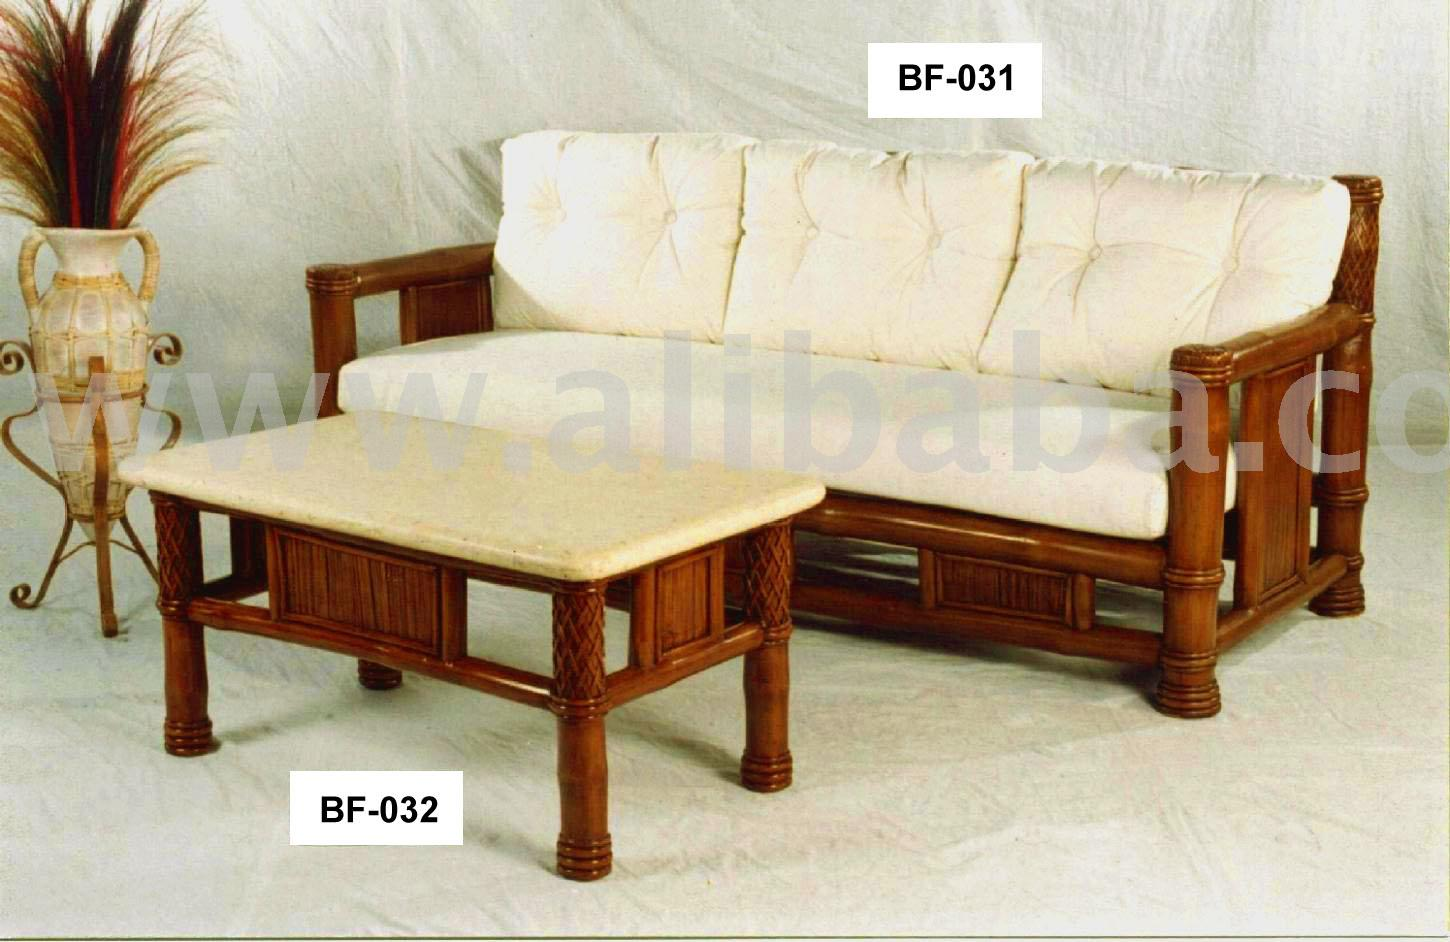 Bamboo furniture buy bamboo furniture product on - Muebles de bambu ...